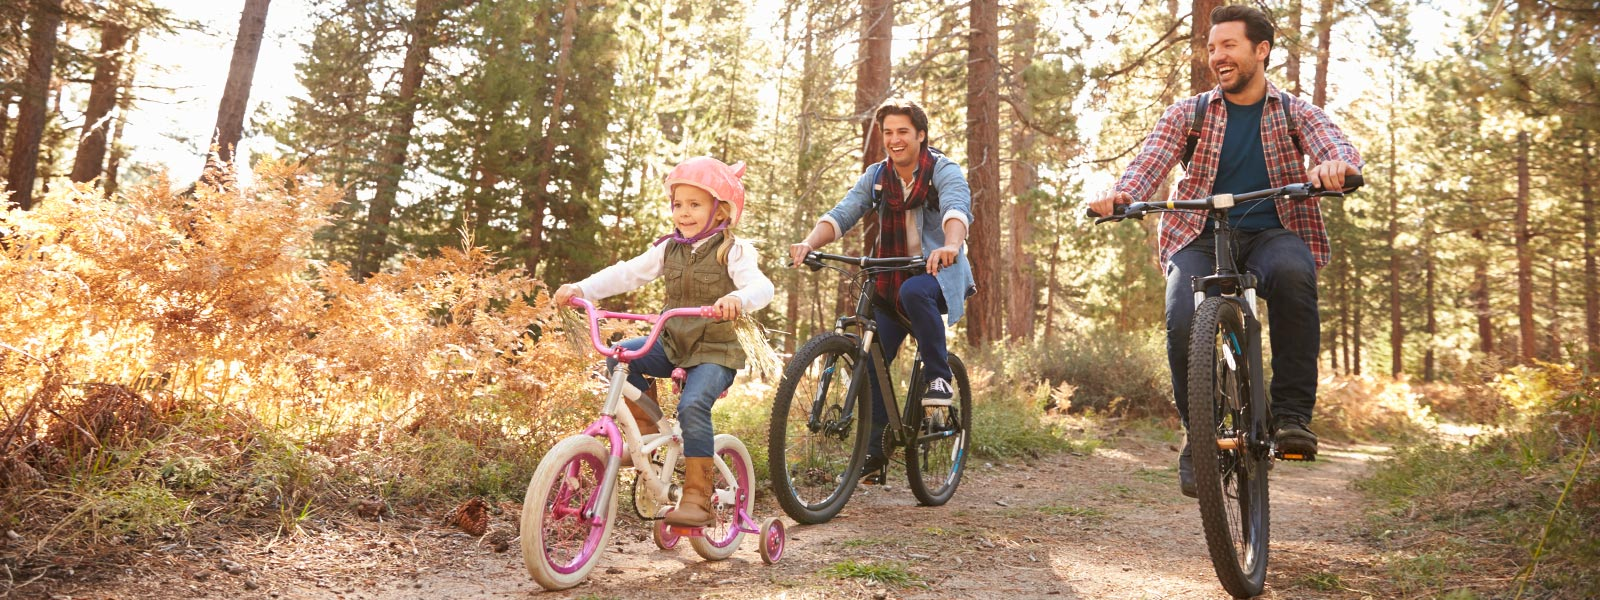 A family riding bicycles on a forest path.